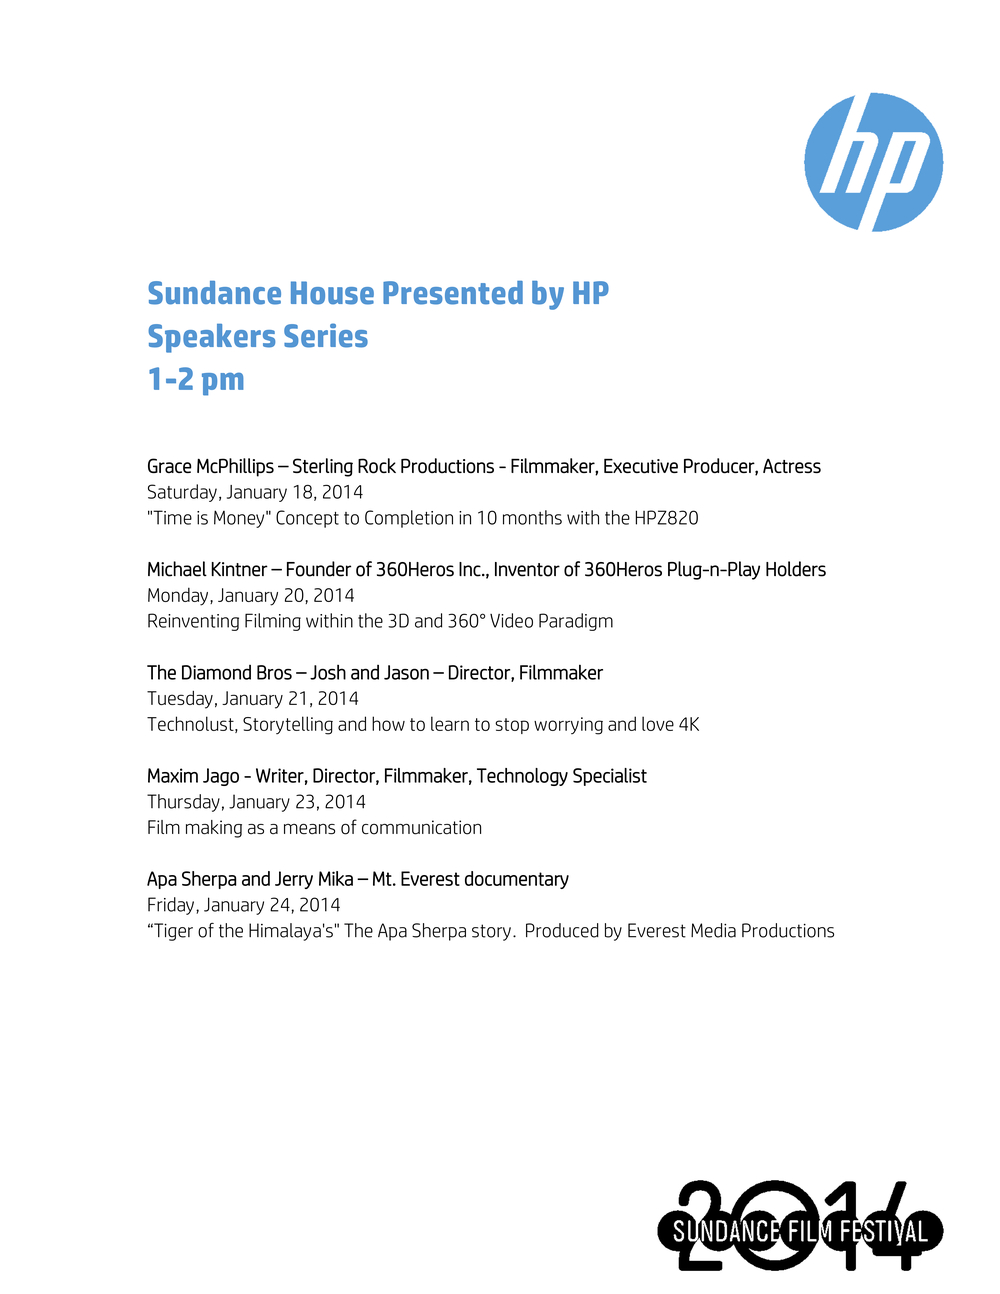 HP_Sundance_Presenters_WS_Speakers_Series 011014.jpg